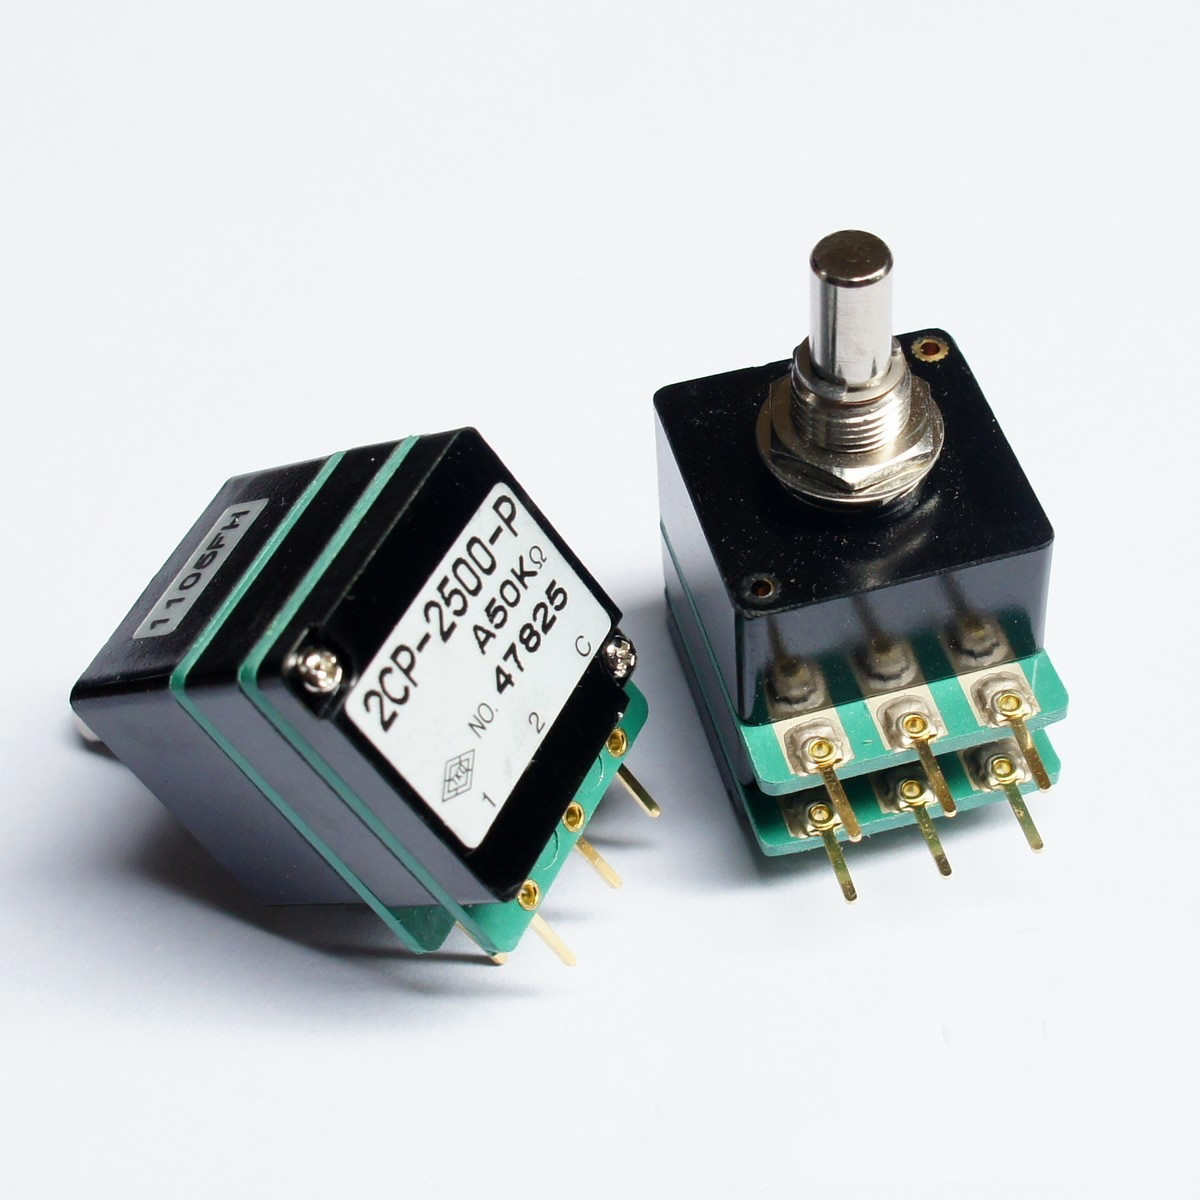 TKD 2CP-2500-P HI-END 50KA A50K Potentiometer